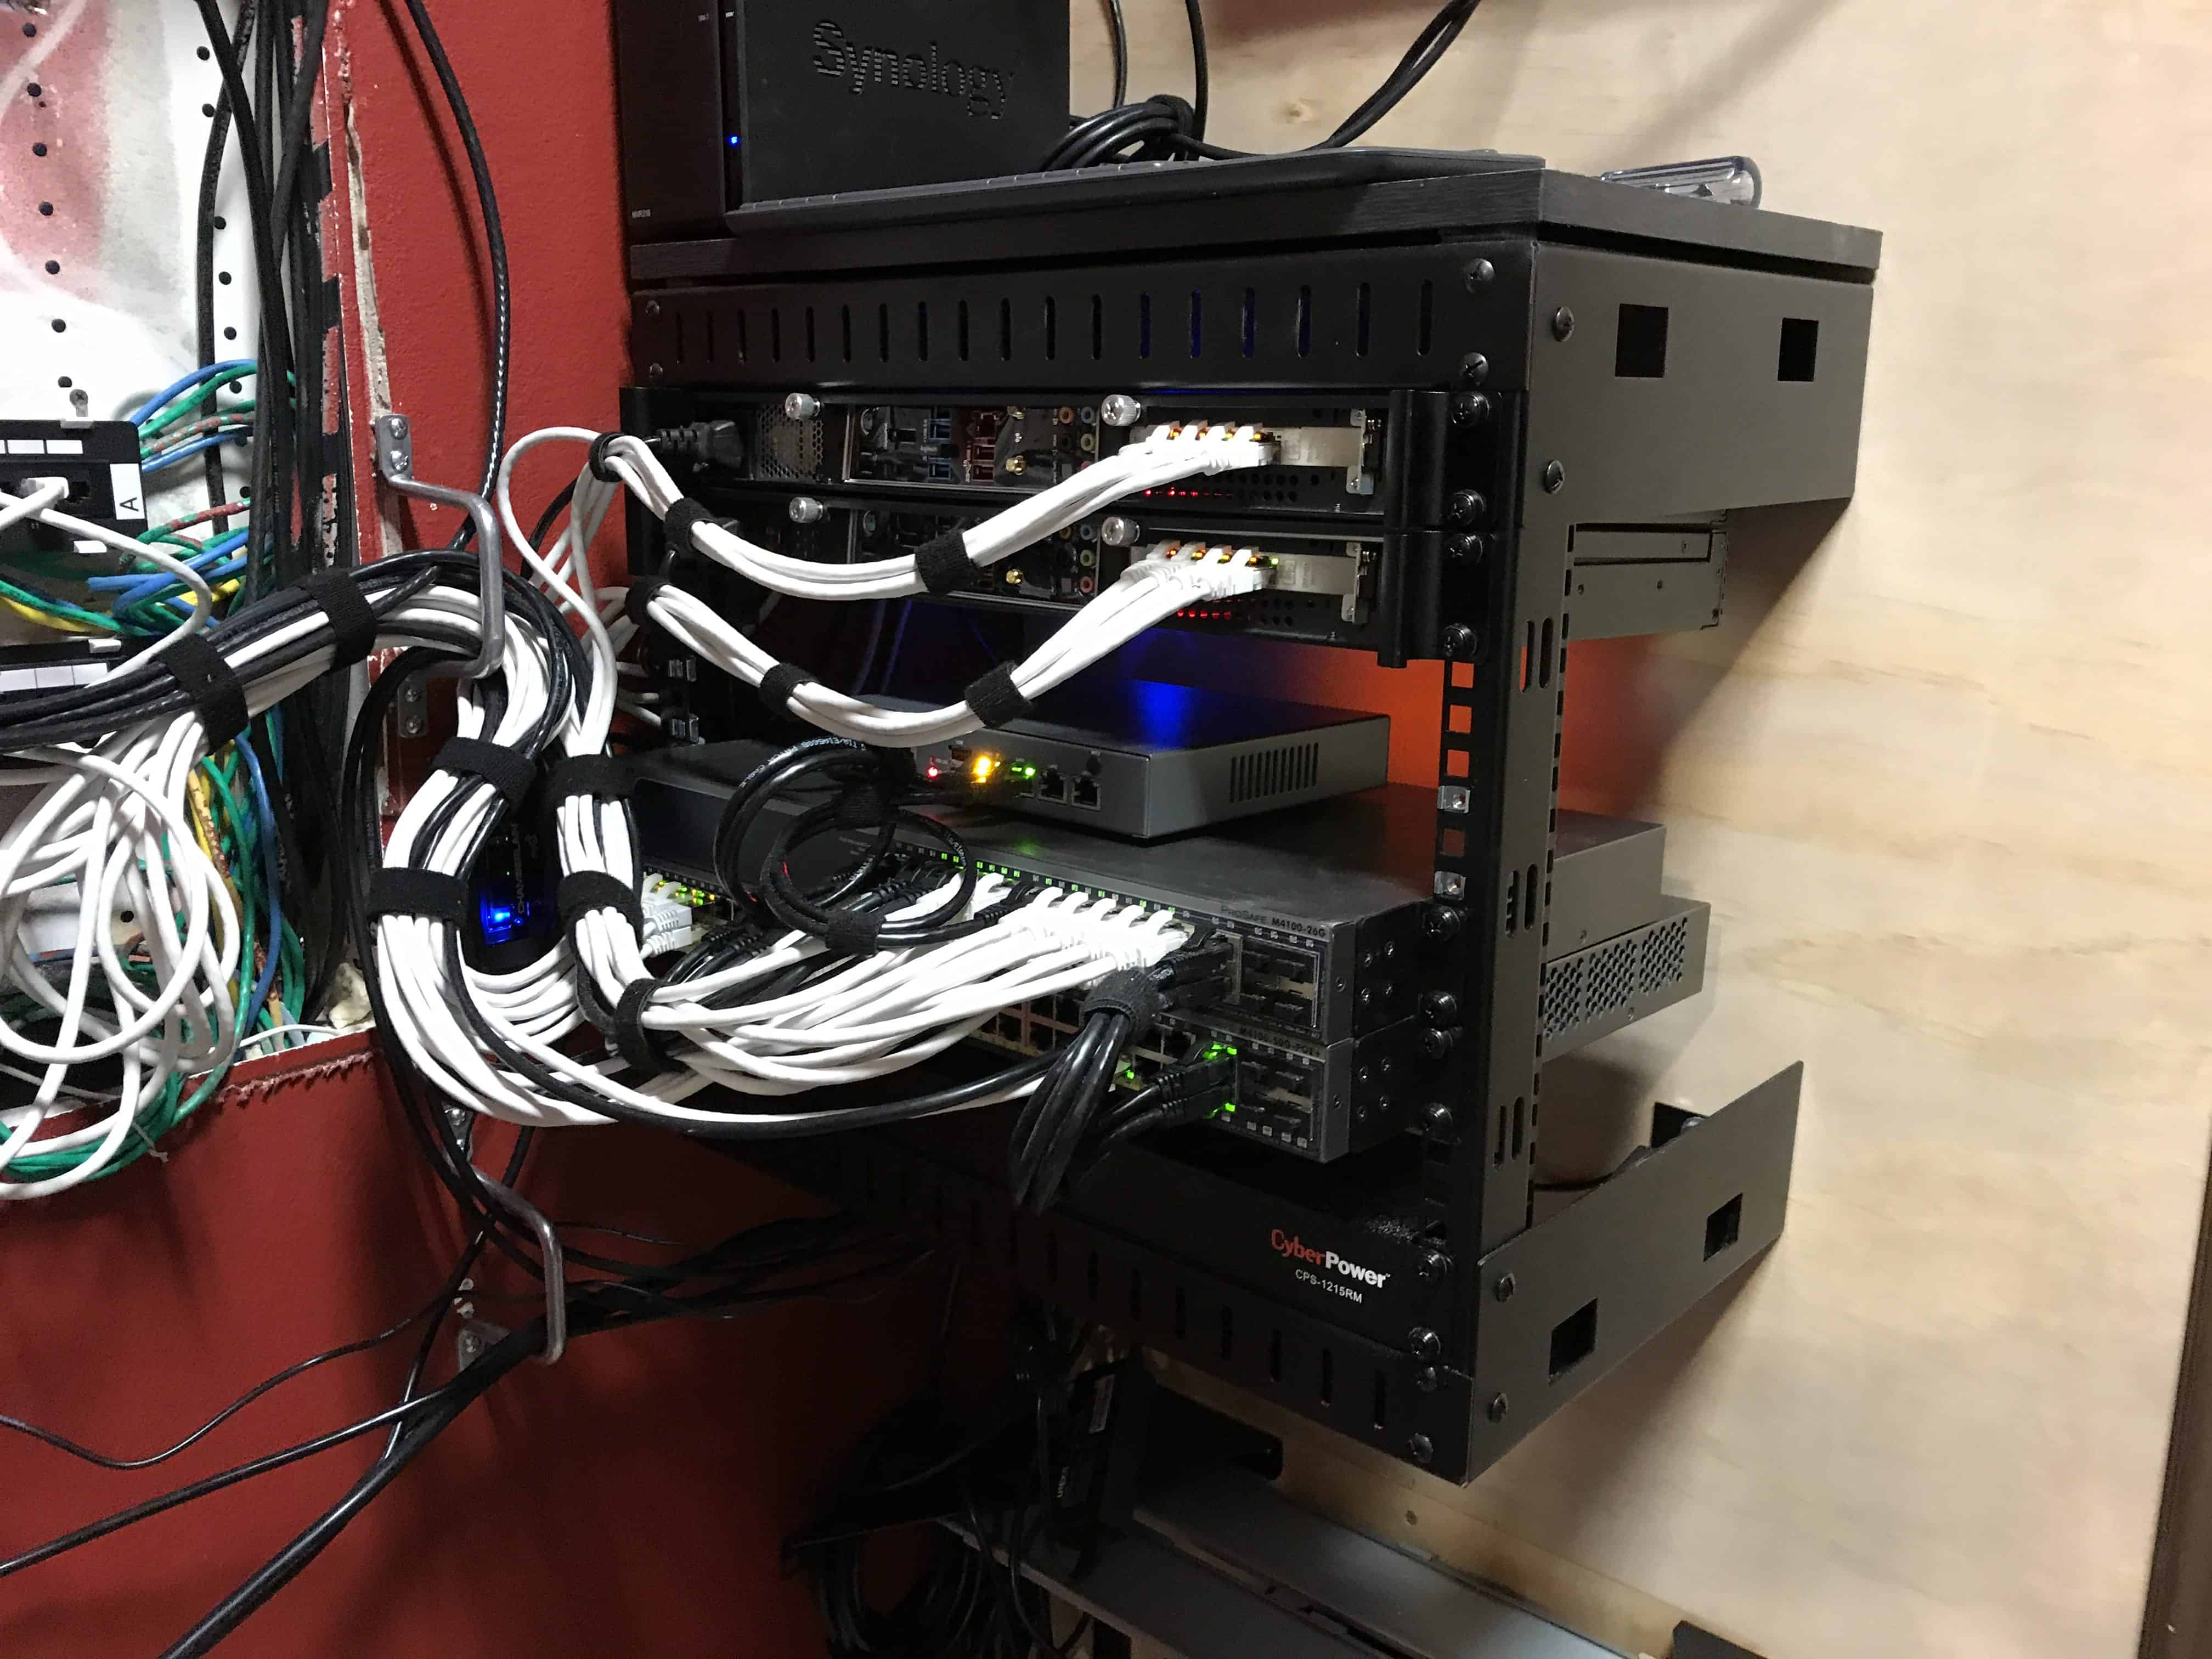 Home Theater Equipment Closet Wiring Venting A Server The Right Way Geek Pub 4032x3024